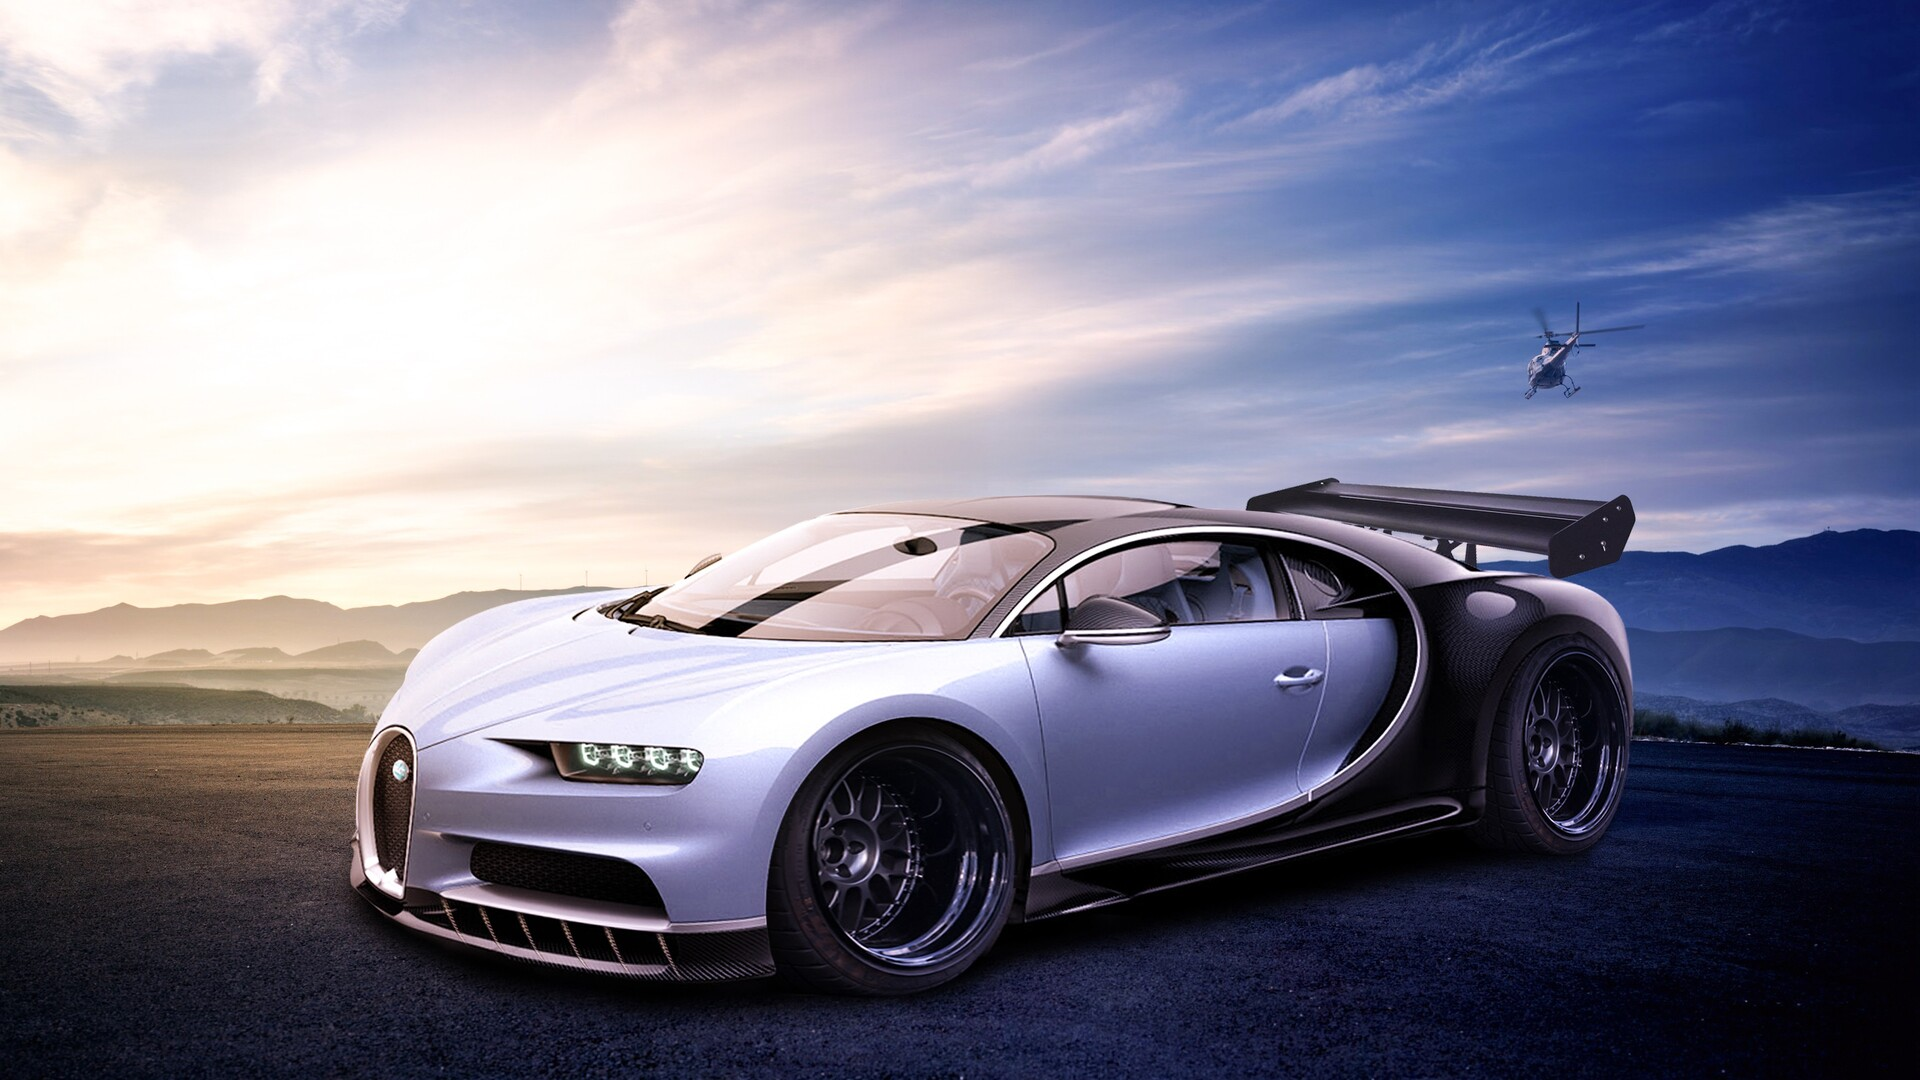 1920x1080 Bugatti Chiron Laptop Full Hd 1080p Hd 4k Wallpapers